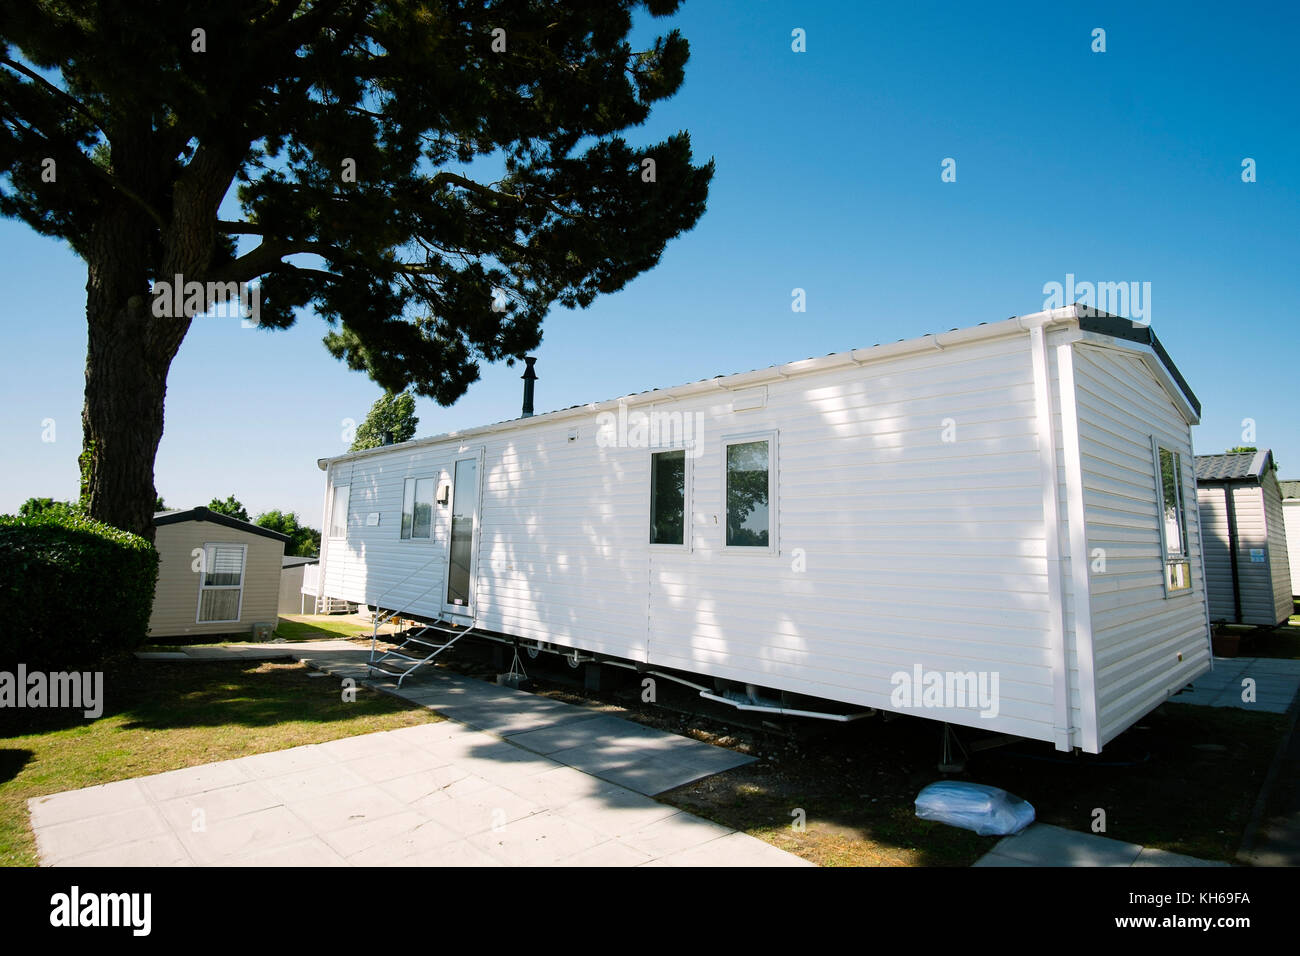 A Static Caravan Holiday Home In Rockley Park Near Poole Dorset